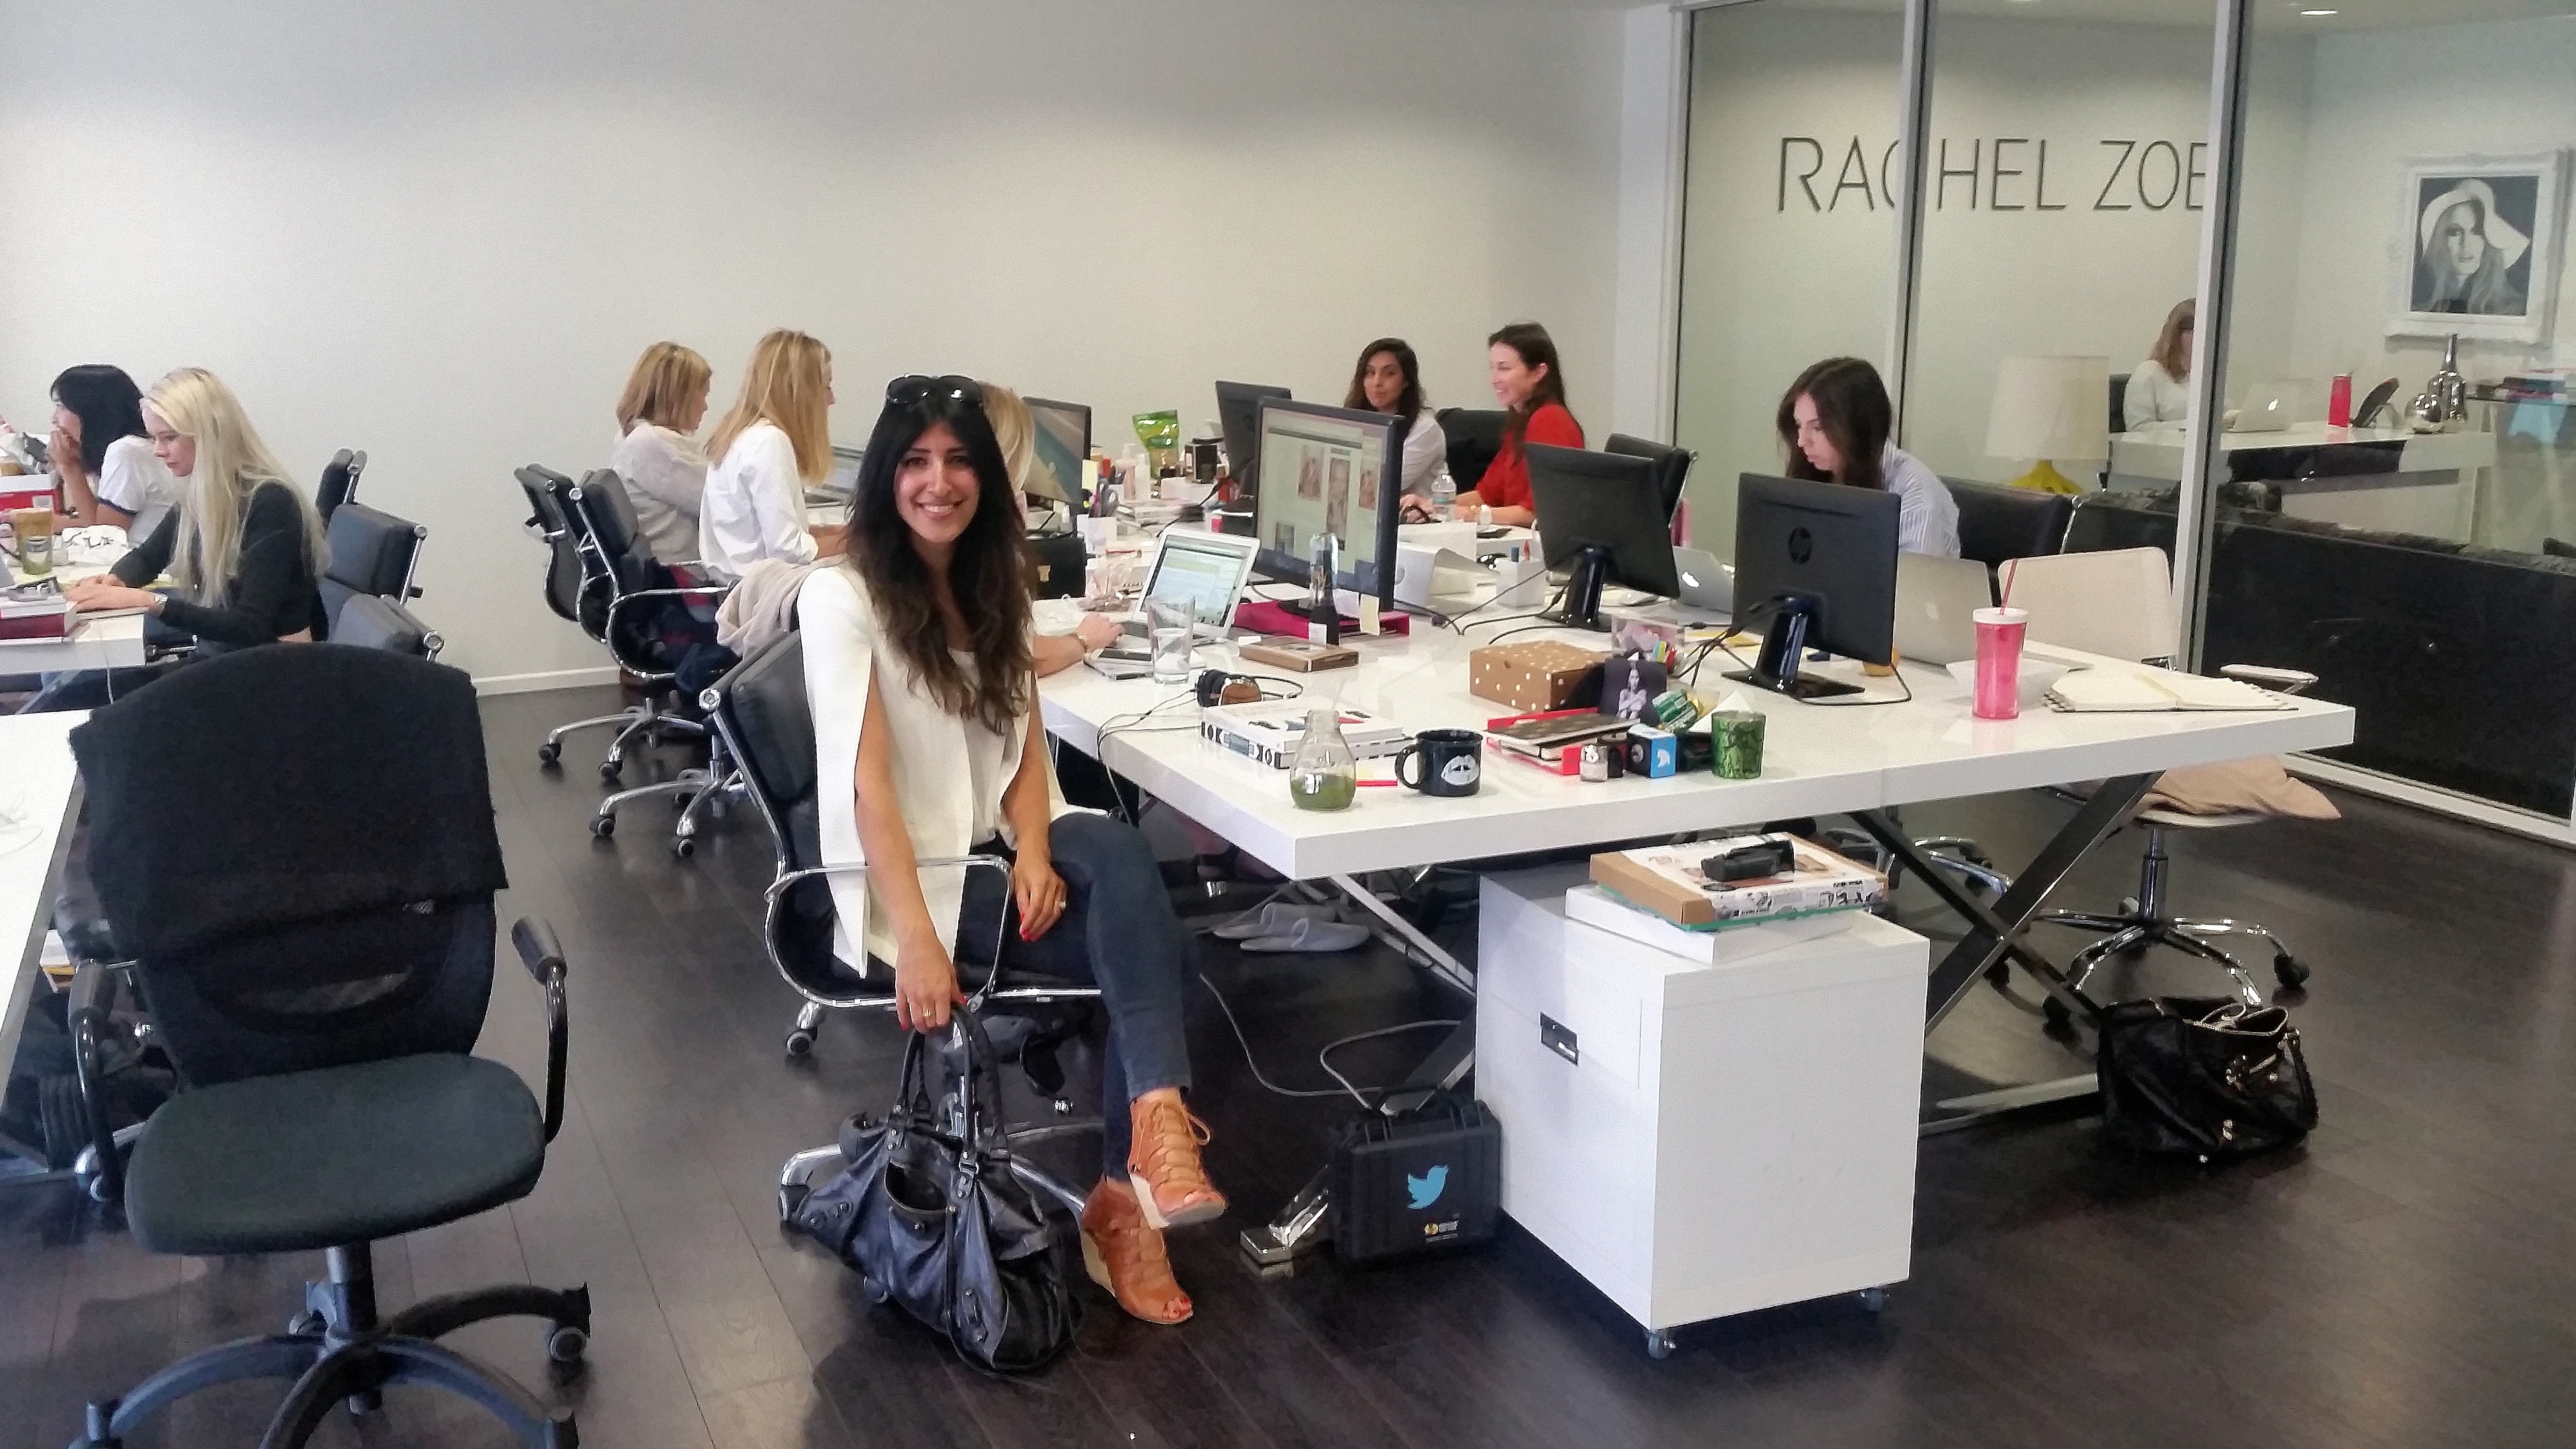 A day in the life of a fashion editor (uhhh... just dreaming!)